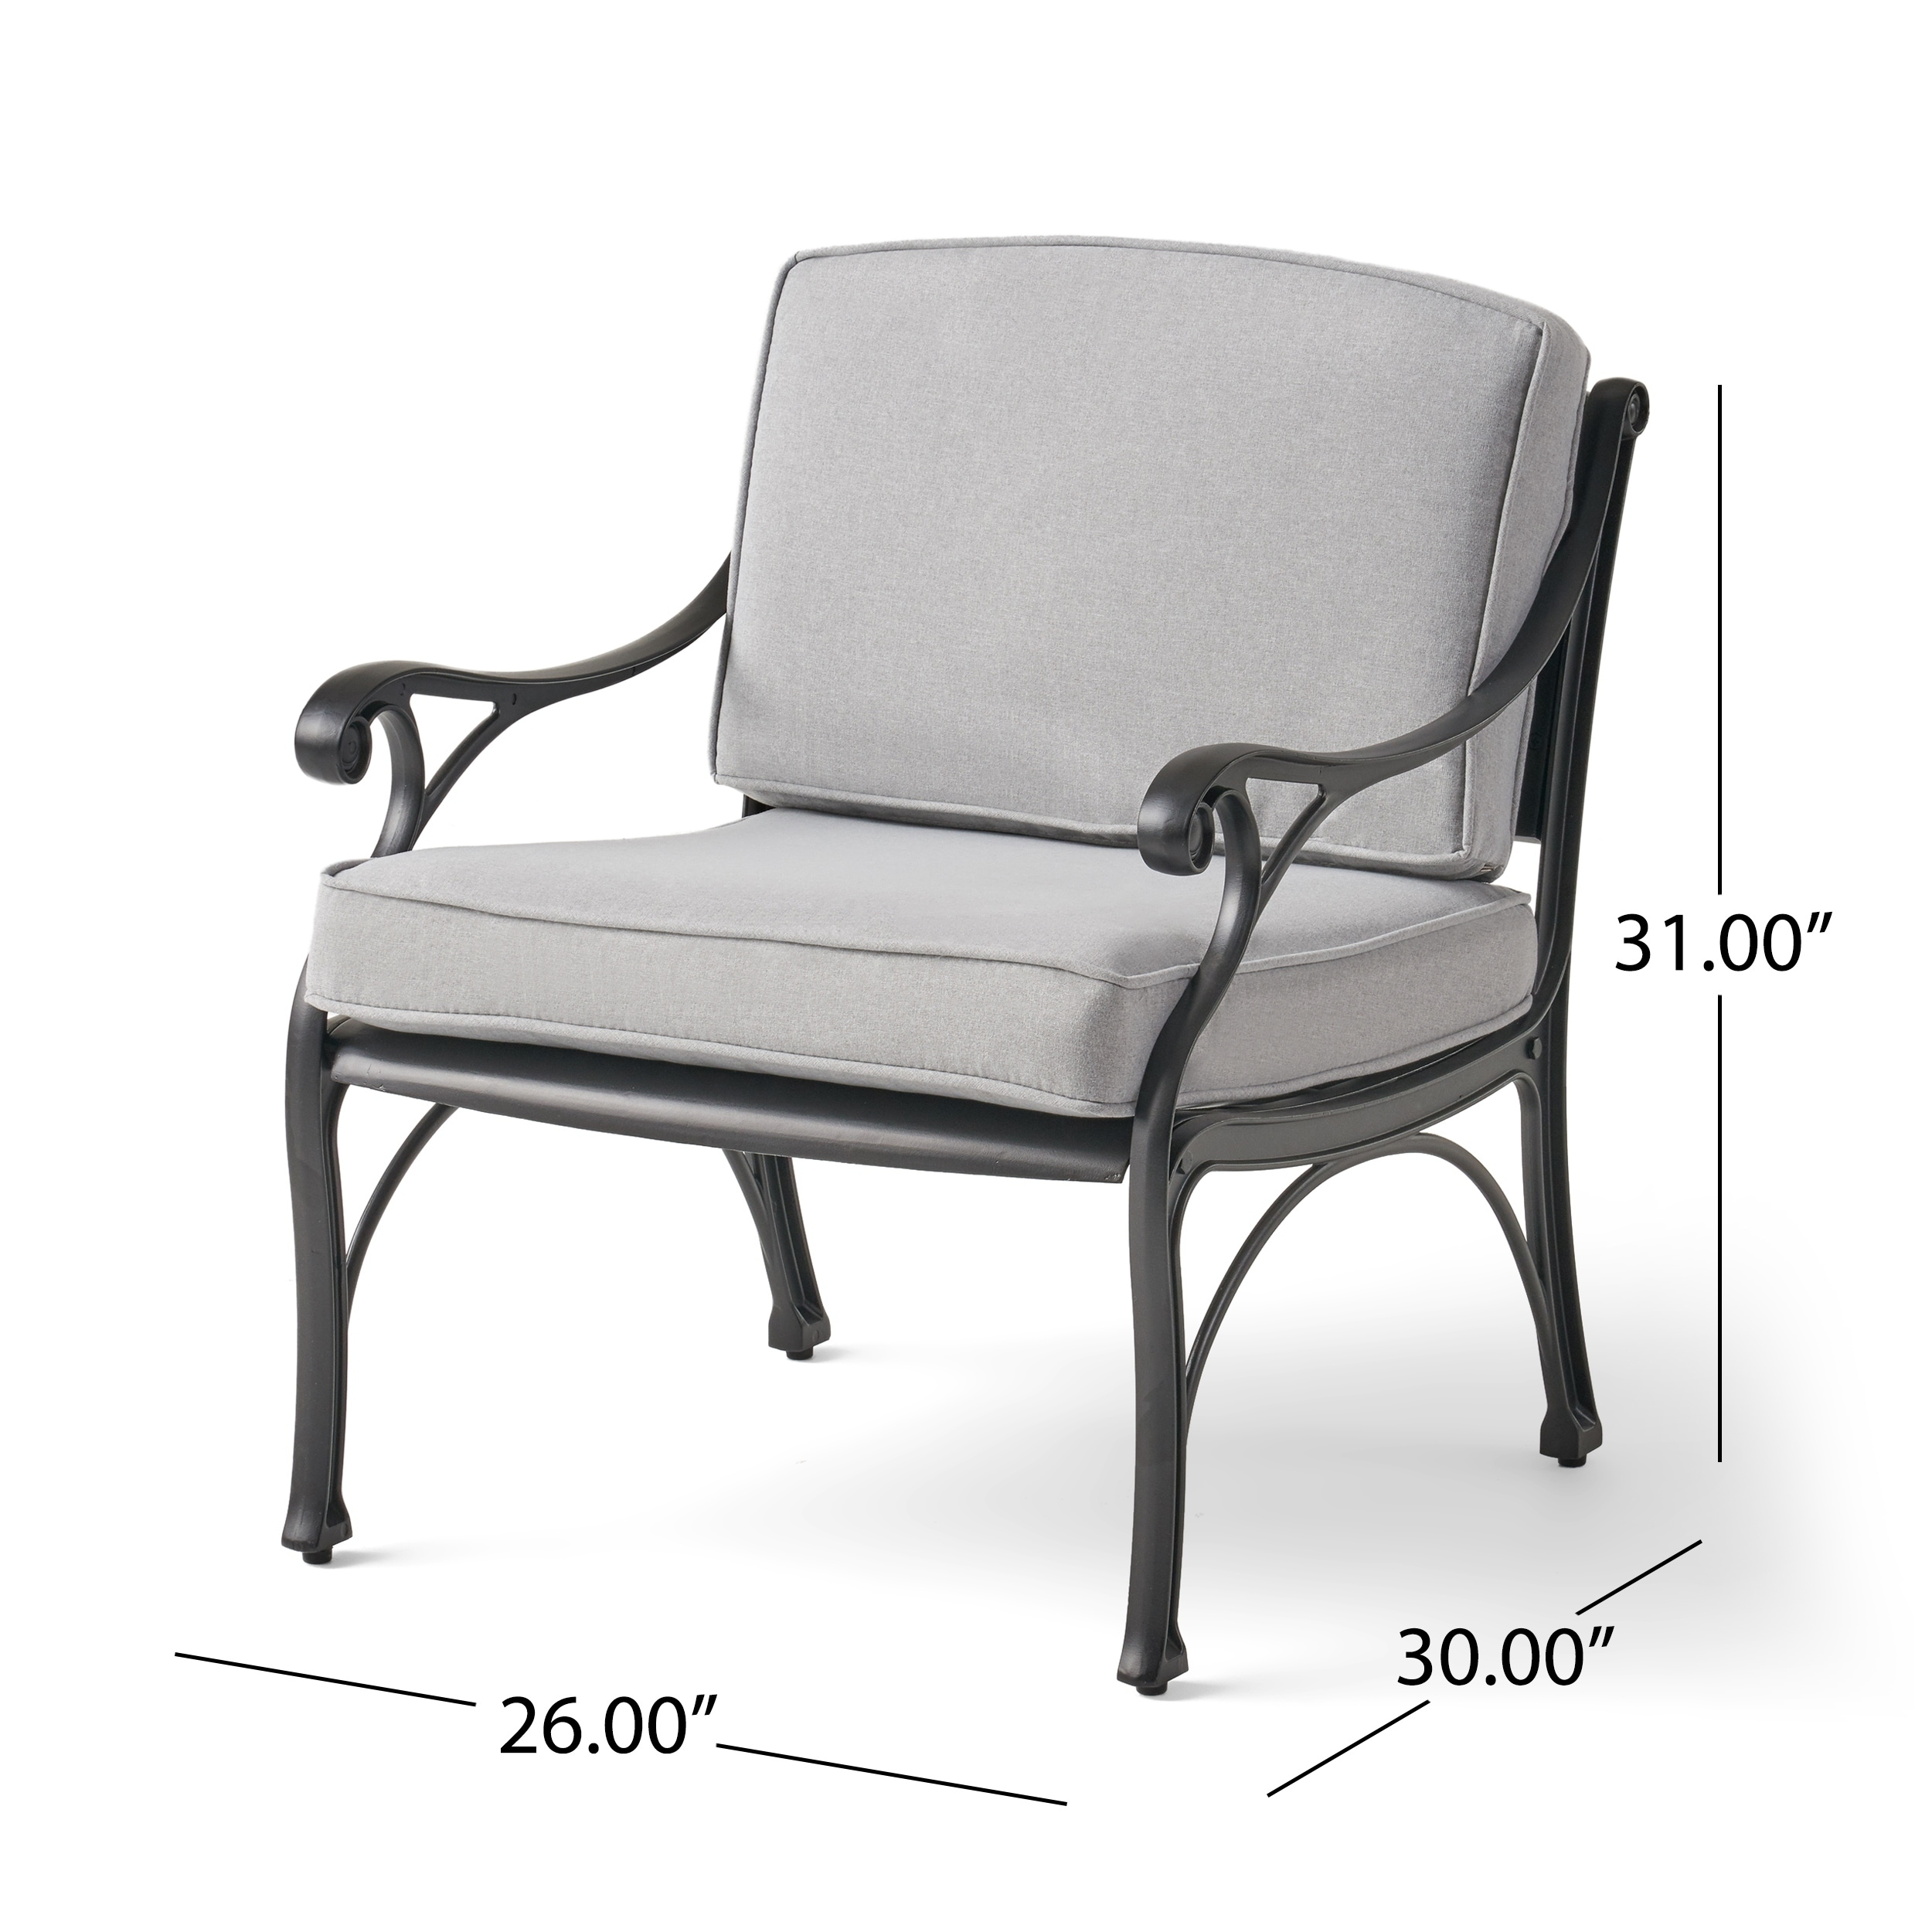 Delicieux Shop Sunshine Outdoor 4 Seater Aluminum Club Chair Set With Fire Pit By  Christopher Knight Home   On Sale   Free Shipping Today   Overstock    28226945